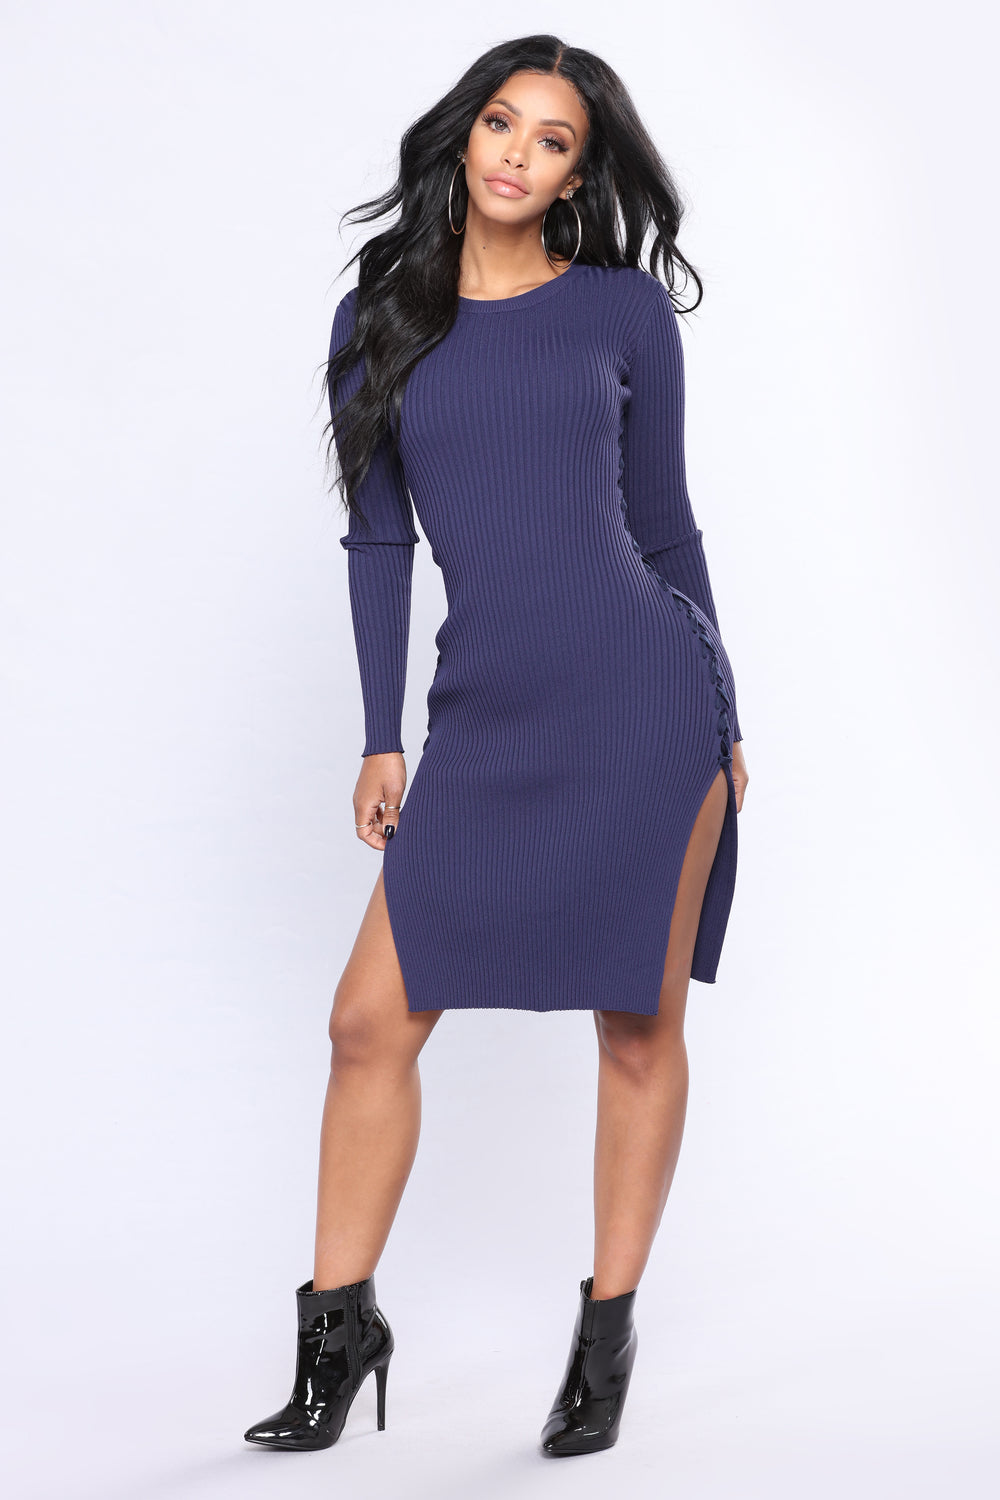 New Addy Lace Up Ribbed Dress - Blue